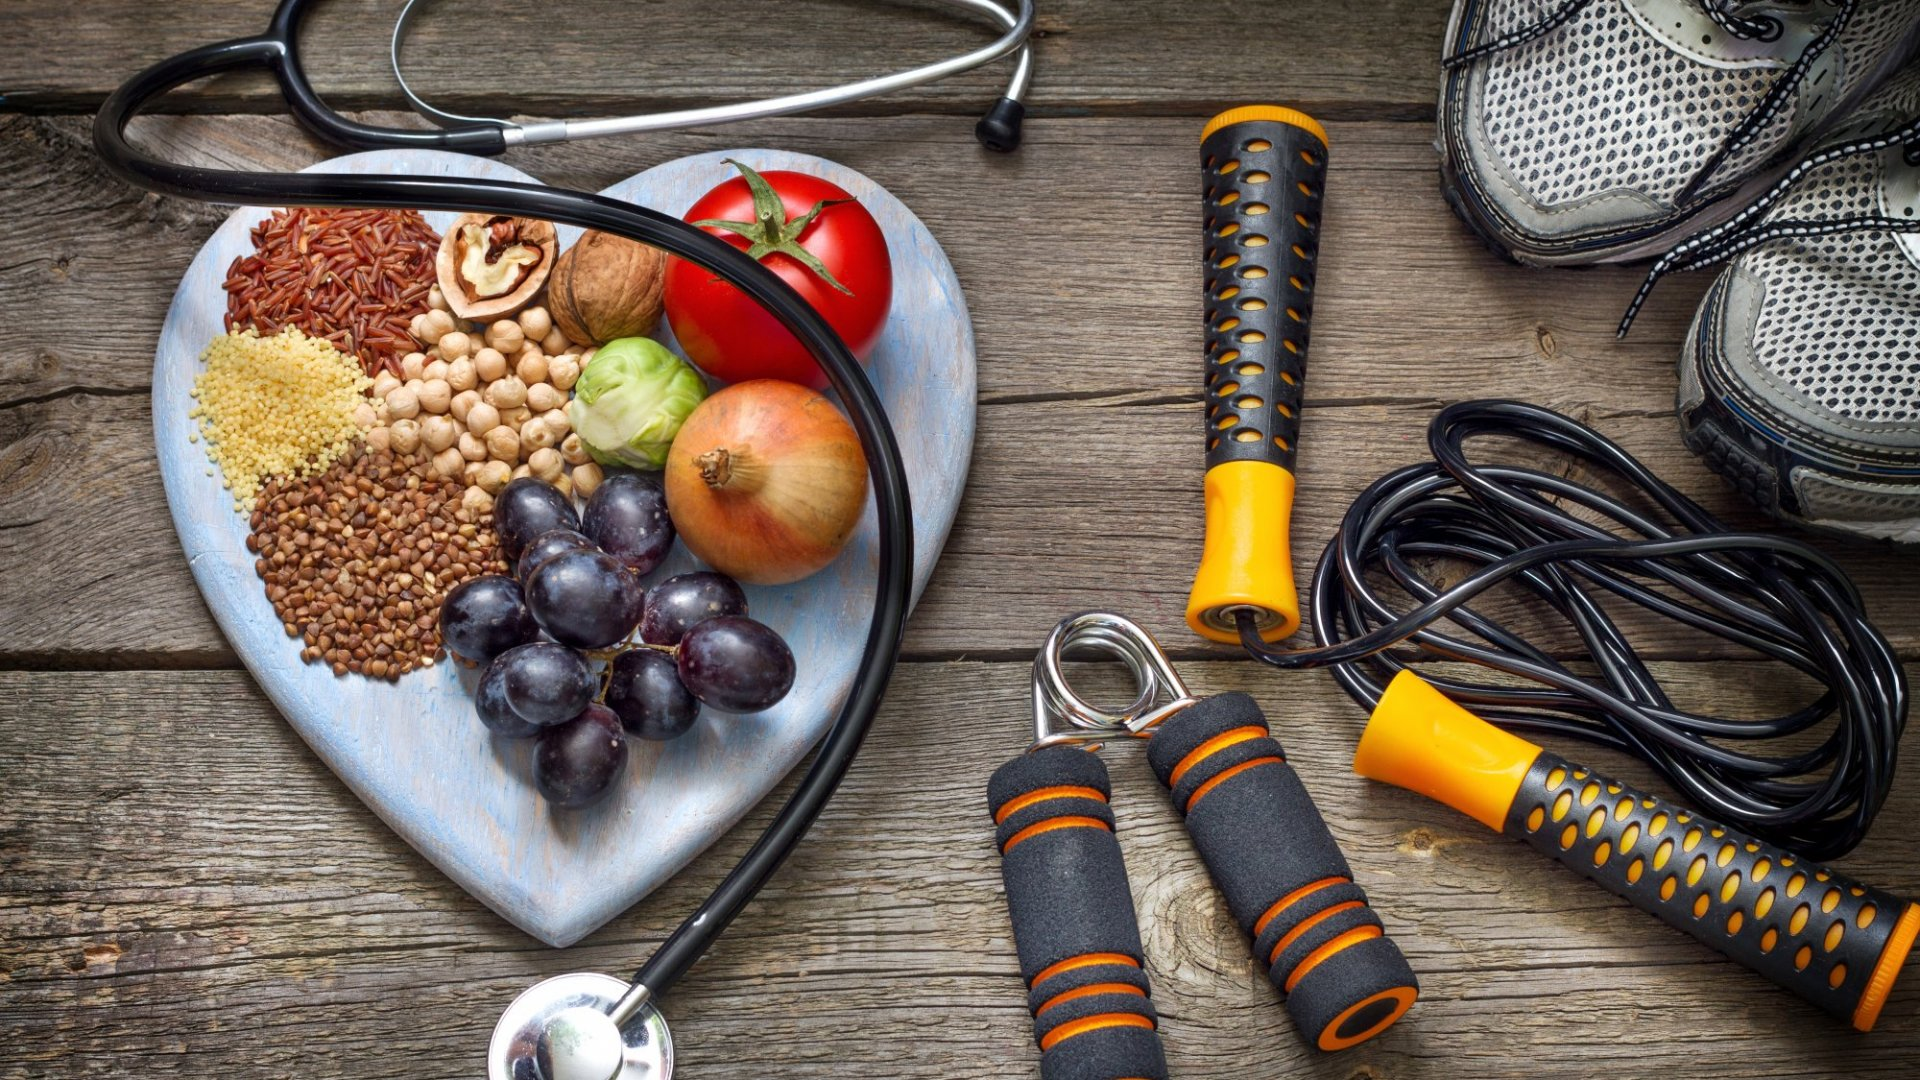 Why I Don't Think of Vegetables, Fruit, and Exercise as Preventing Disease